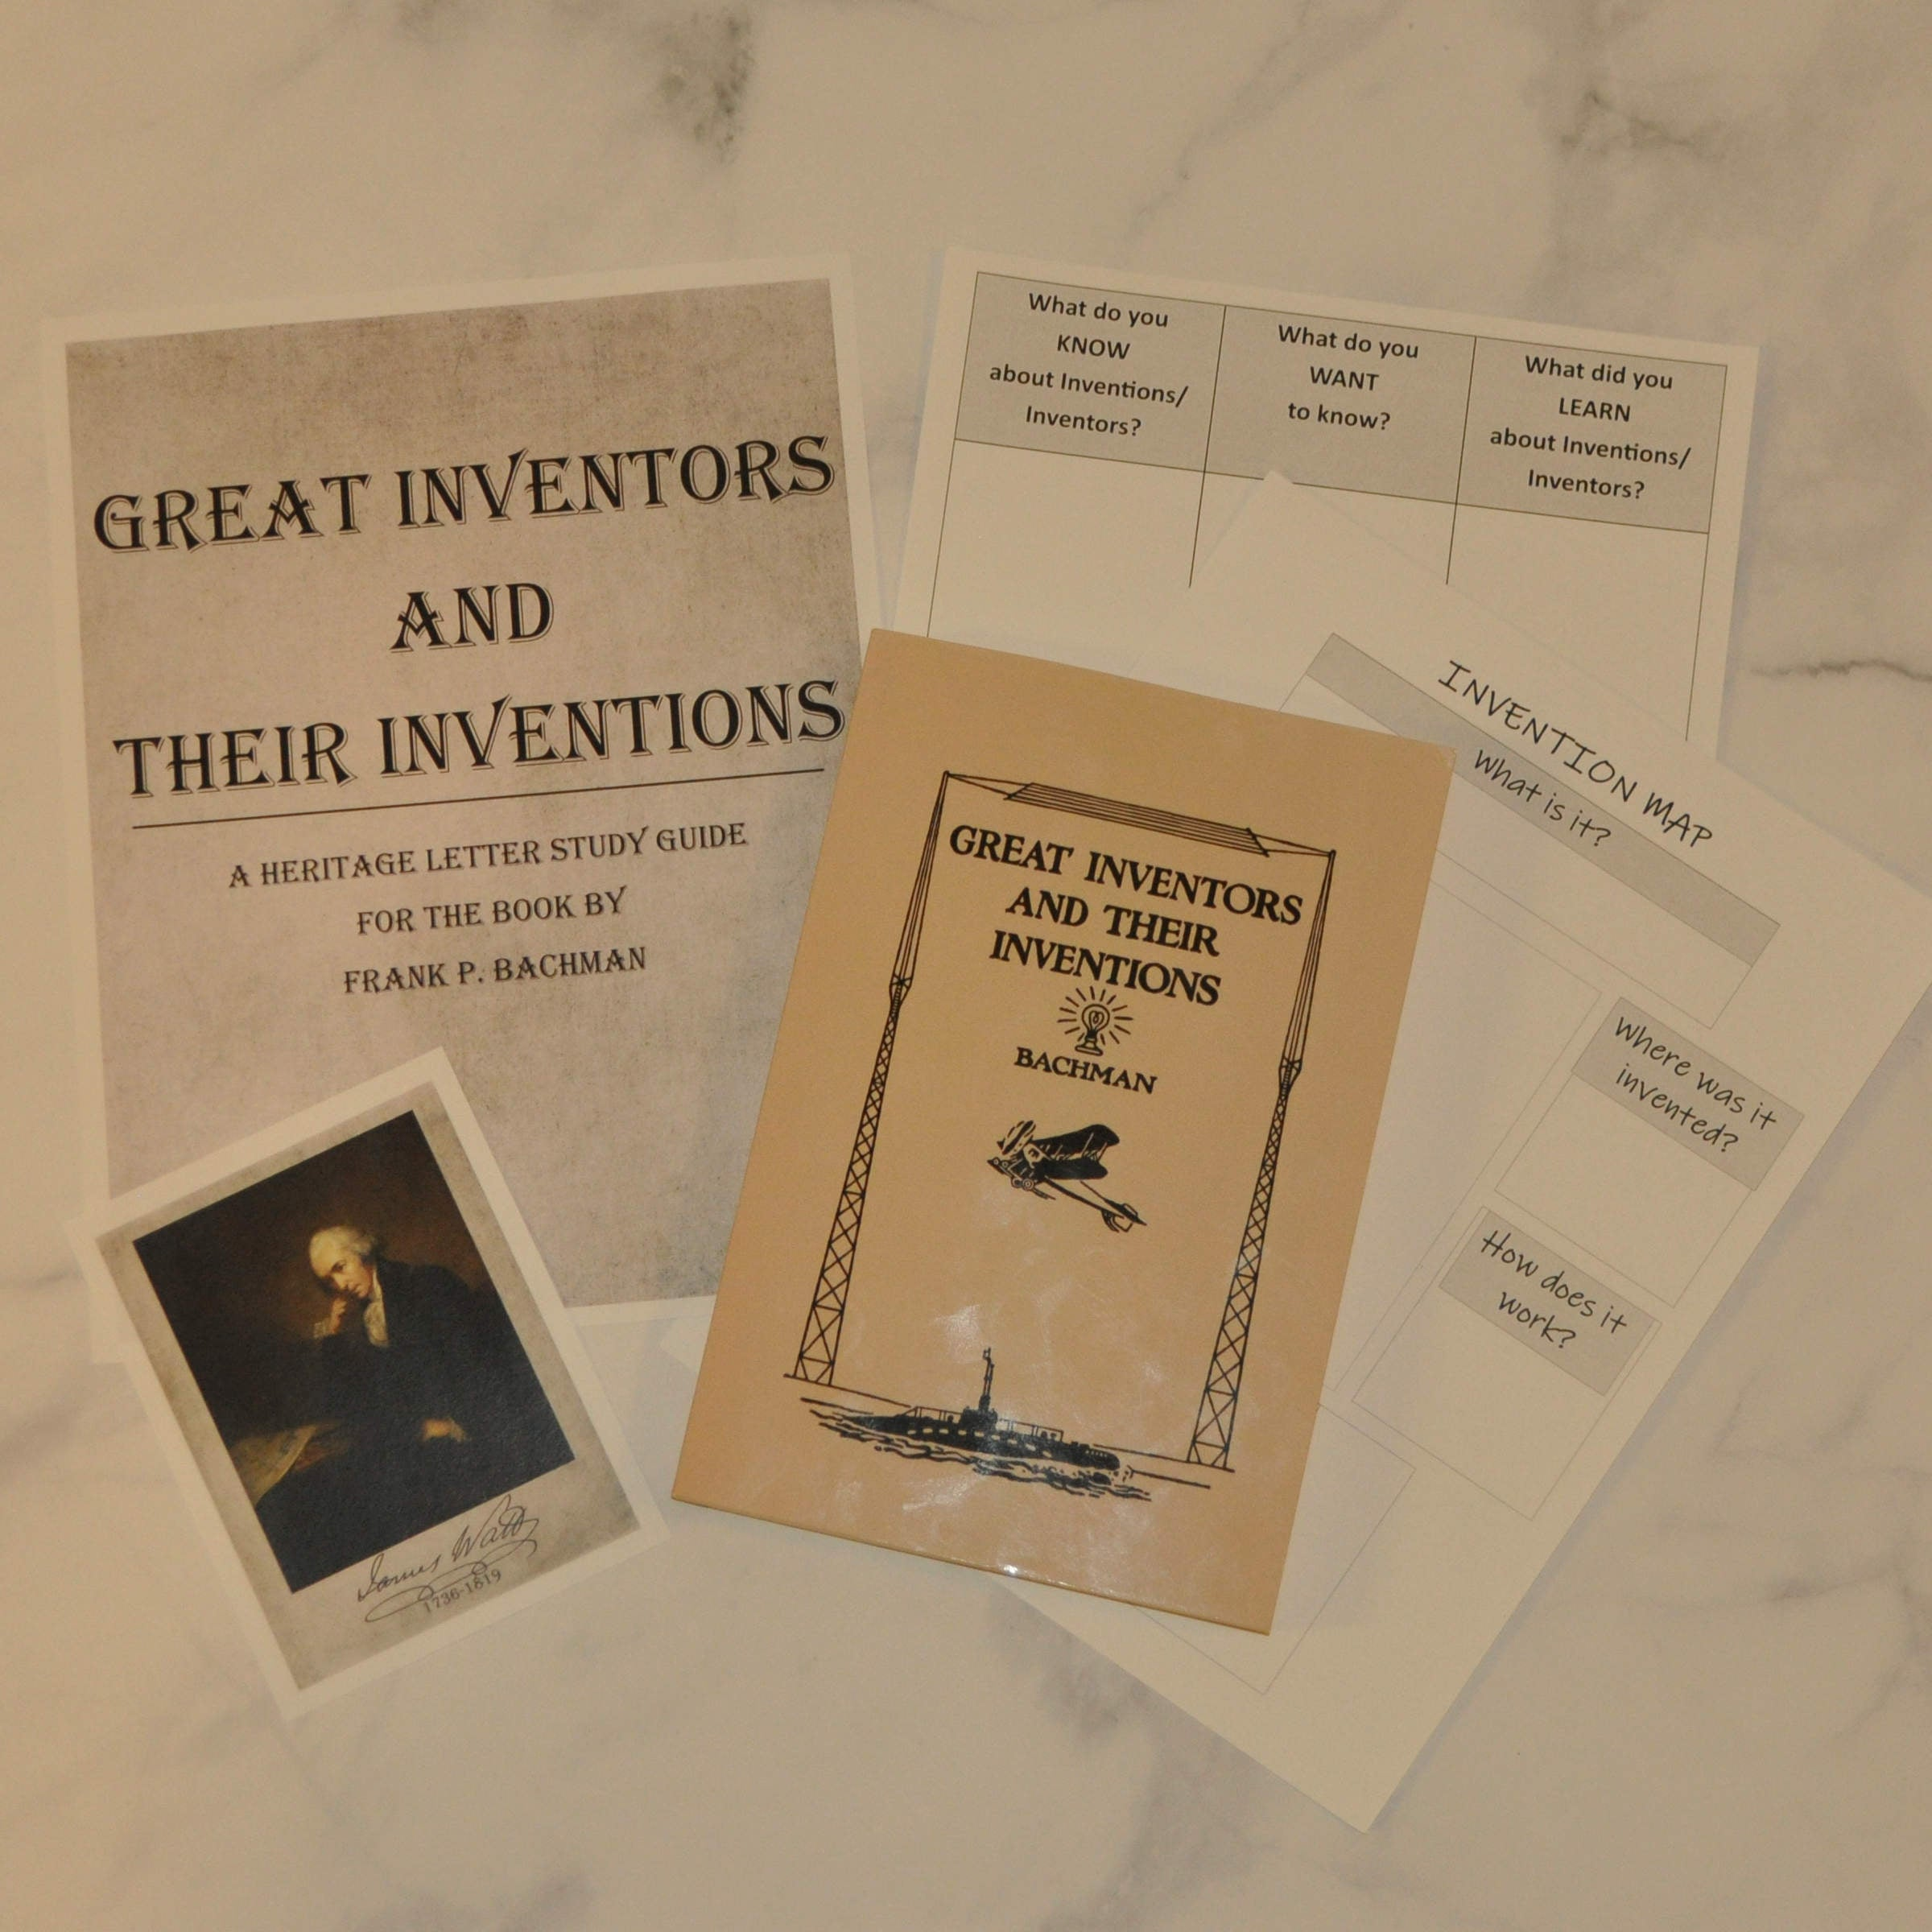 Great Inventors and Their Inventions Study Guide